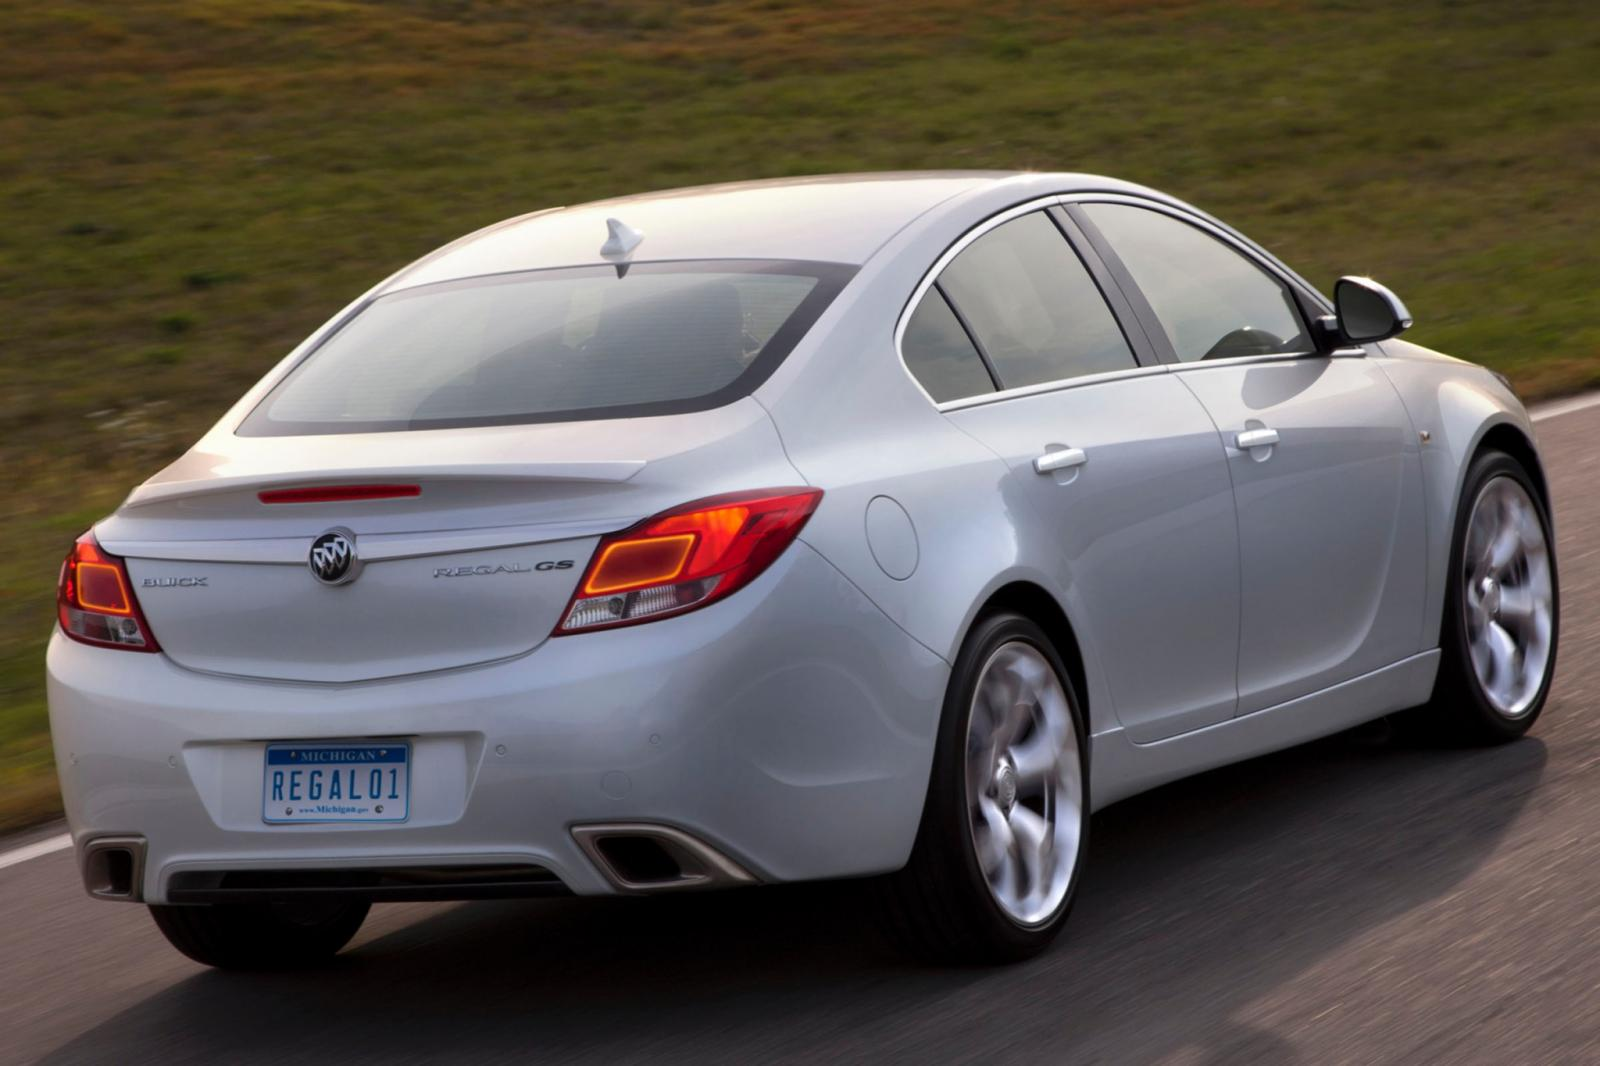 2013 buick regal information and photos zombiedrive. Black Bedroom Furniture Sets. Home Design Ideas